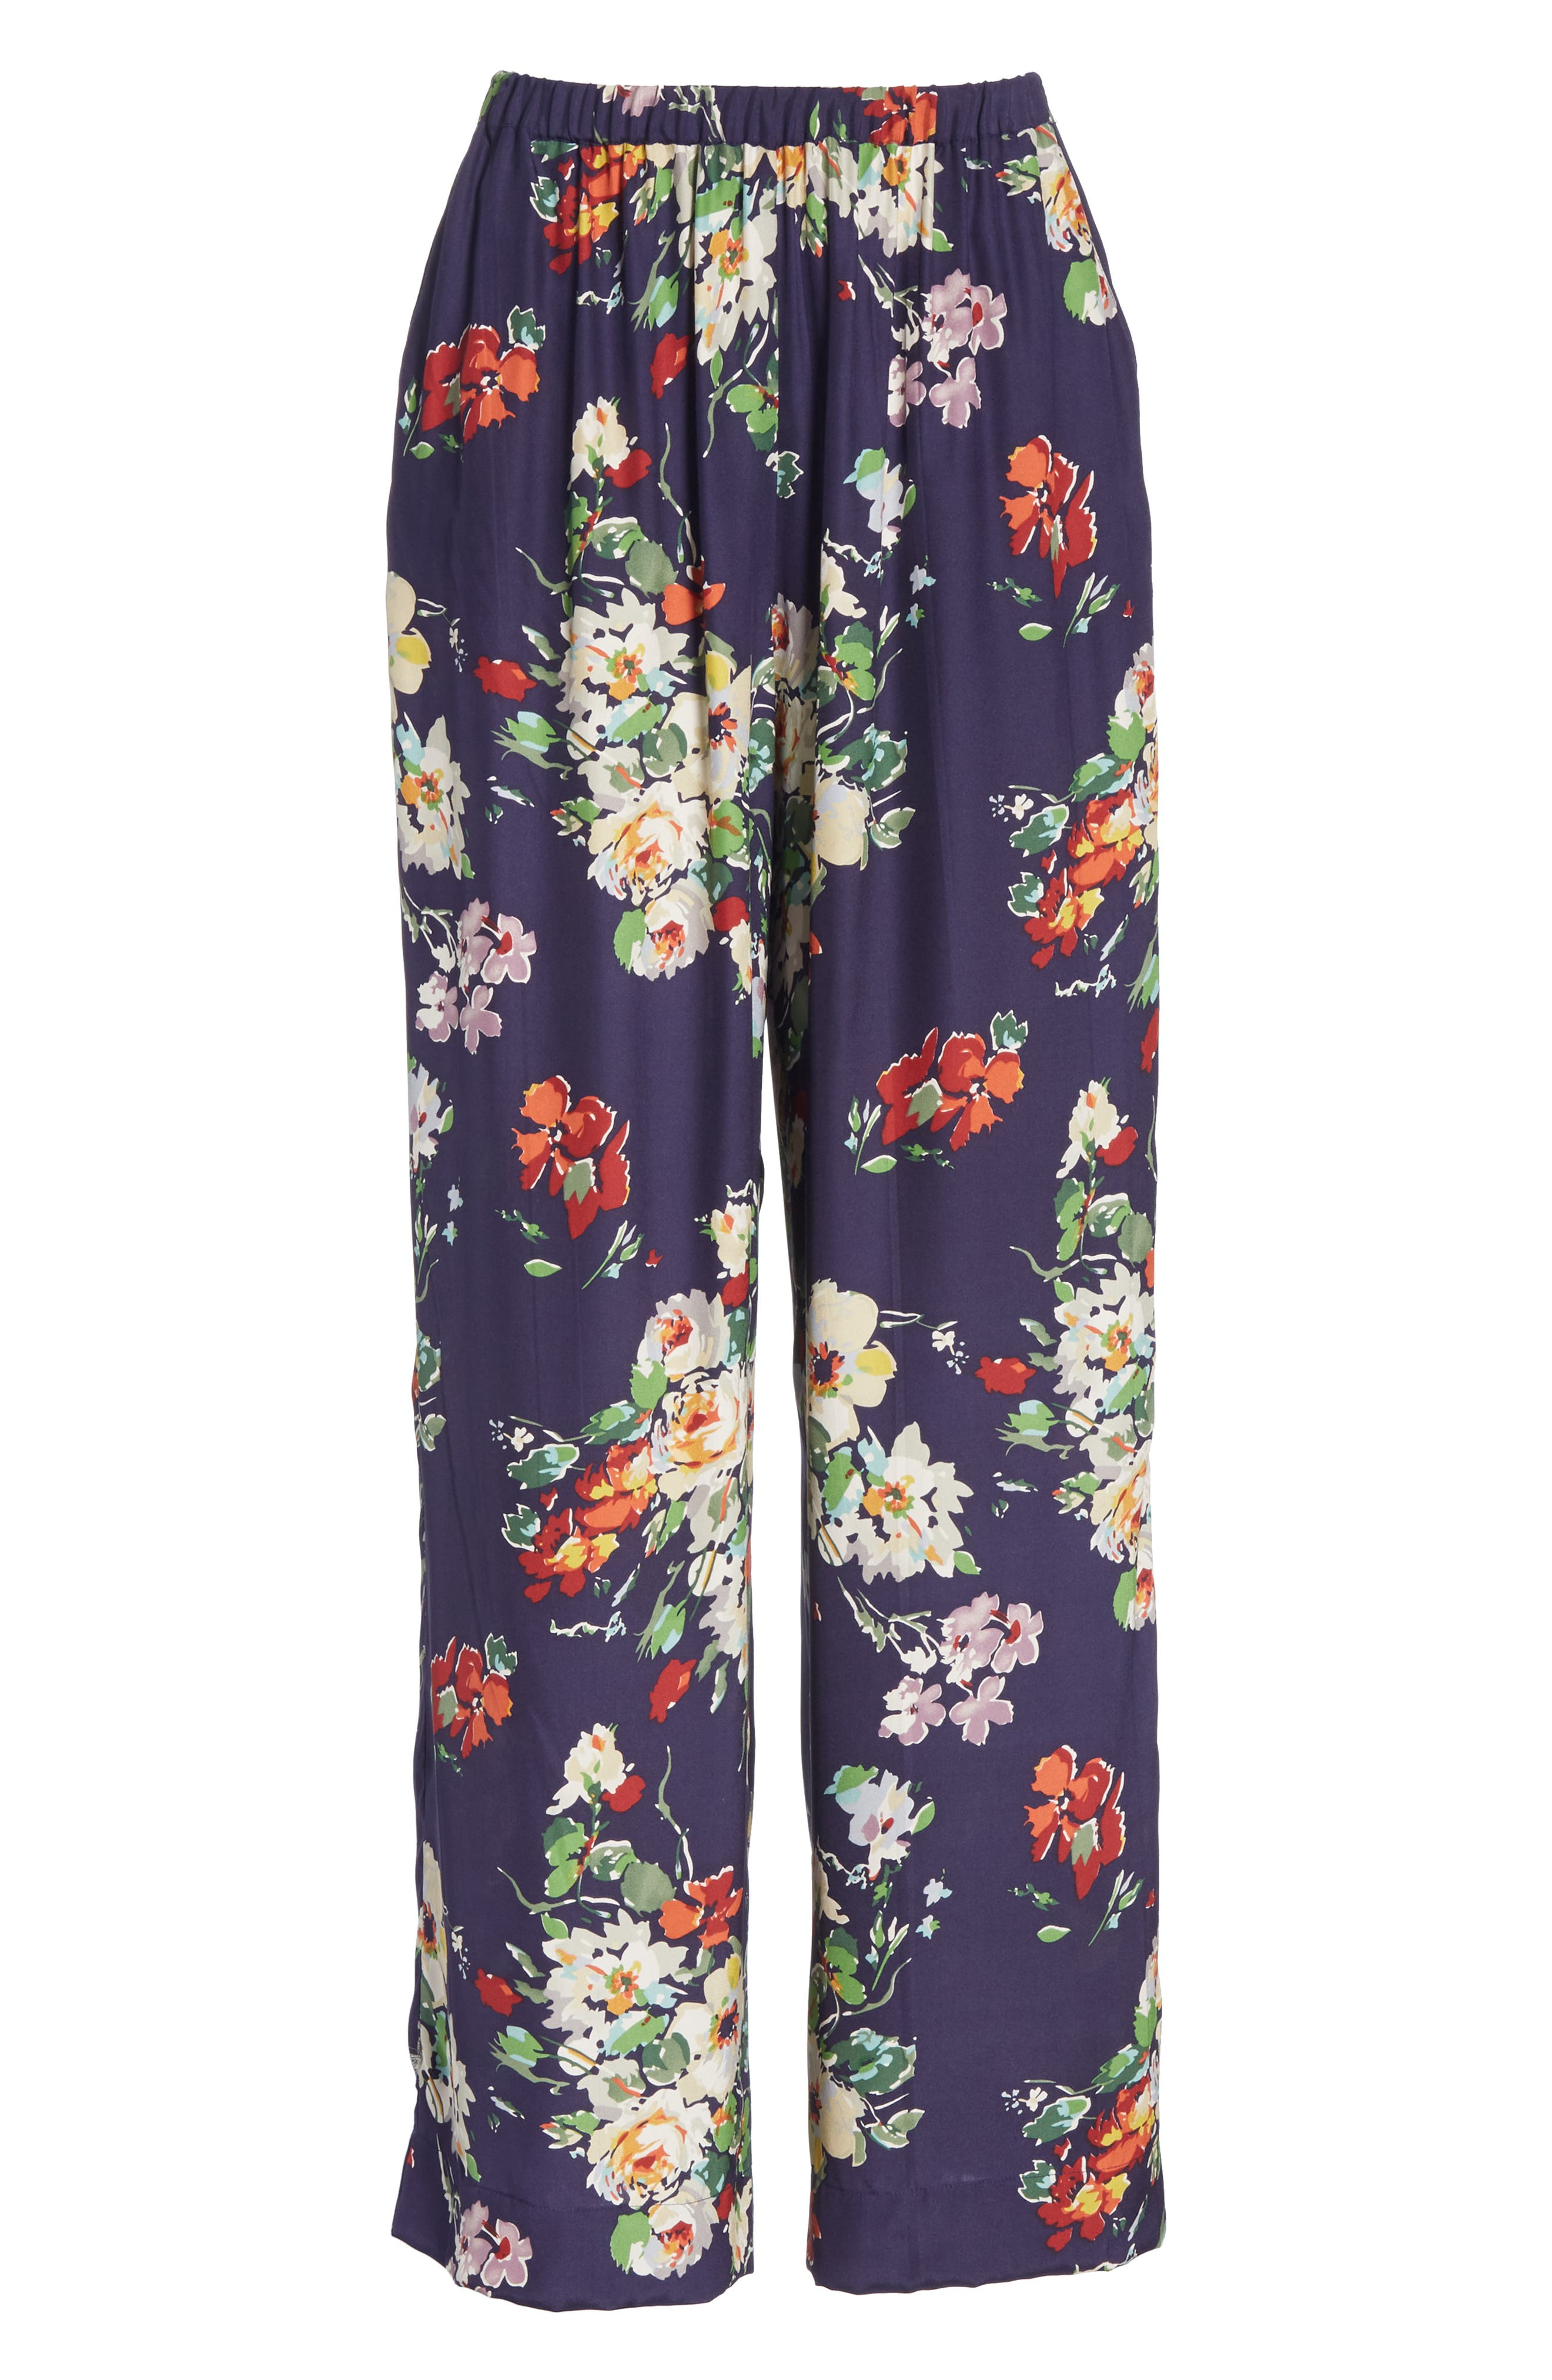 Chaplin Floral Silk Trousers,                             Alternate thumbnail 6, color,                             NIGHTFALL FLORAL PRINT